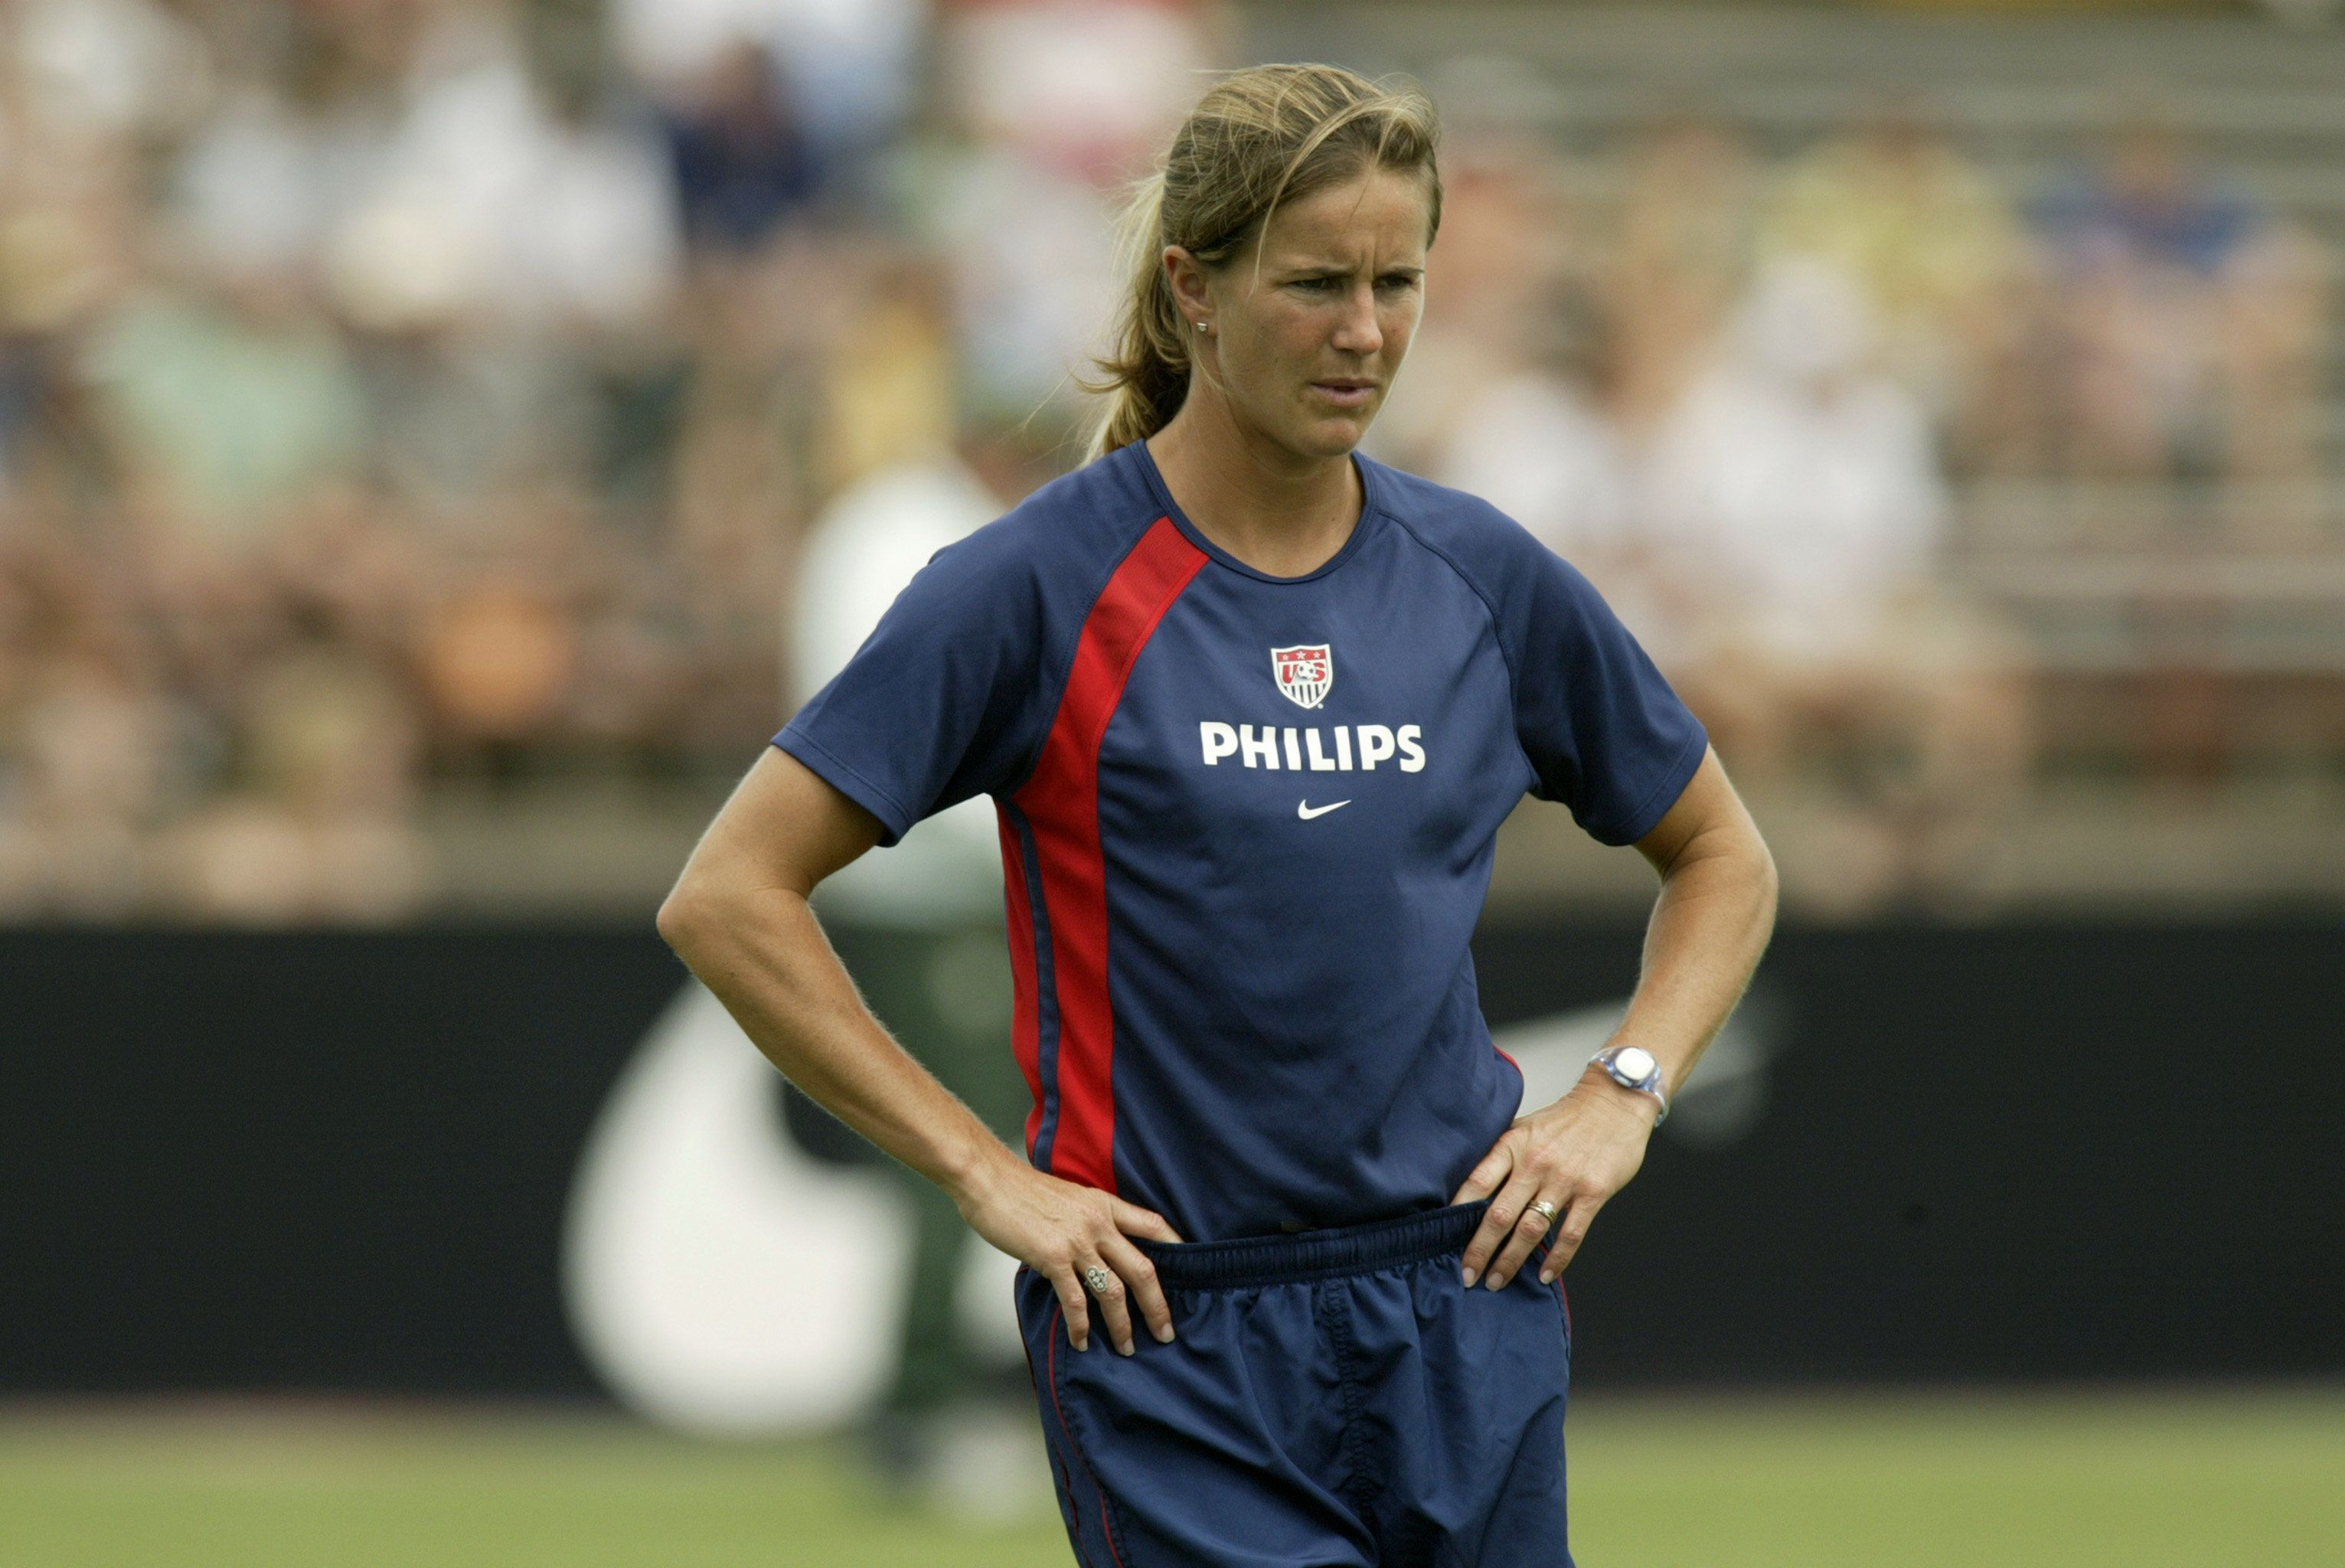 NEW ORLEANS - JULY 13:  Brandi Chastain of the U.S. Women's national team warms up prior to their match against the Brazil Women's national team at Tad Gormley Stadium on July 13, 2003 in New Orleans, Louisiana.  The U.S. defeated Brazil 1-0.  (Photo by Ronald Martinez/Getty Images)